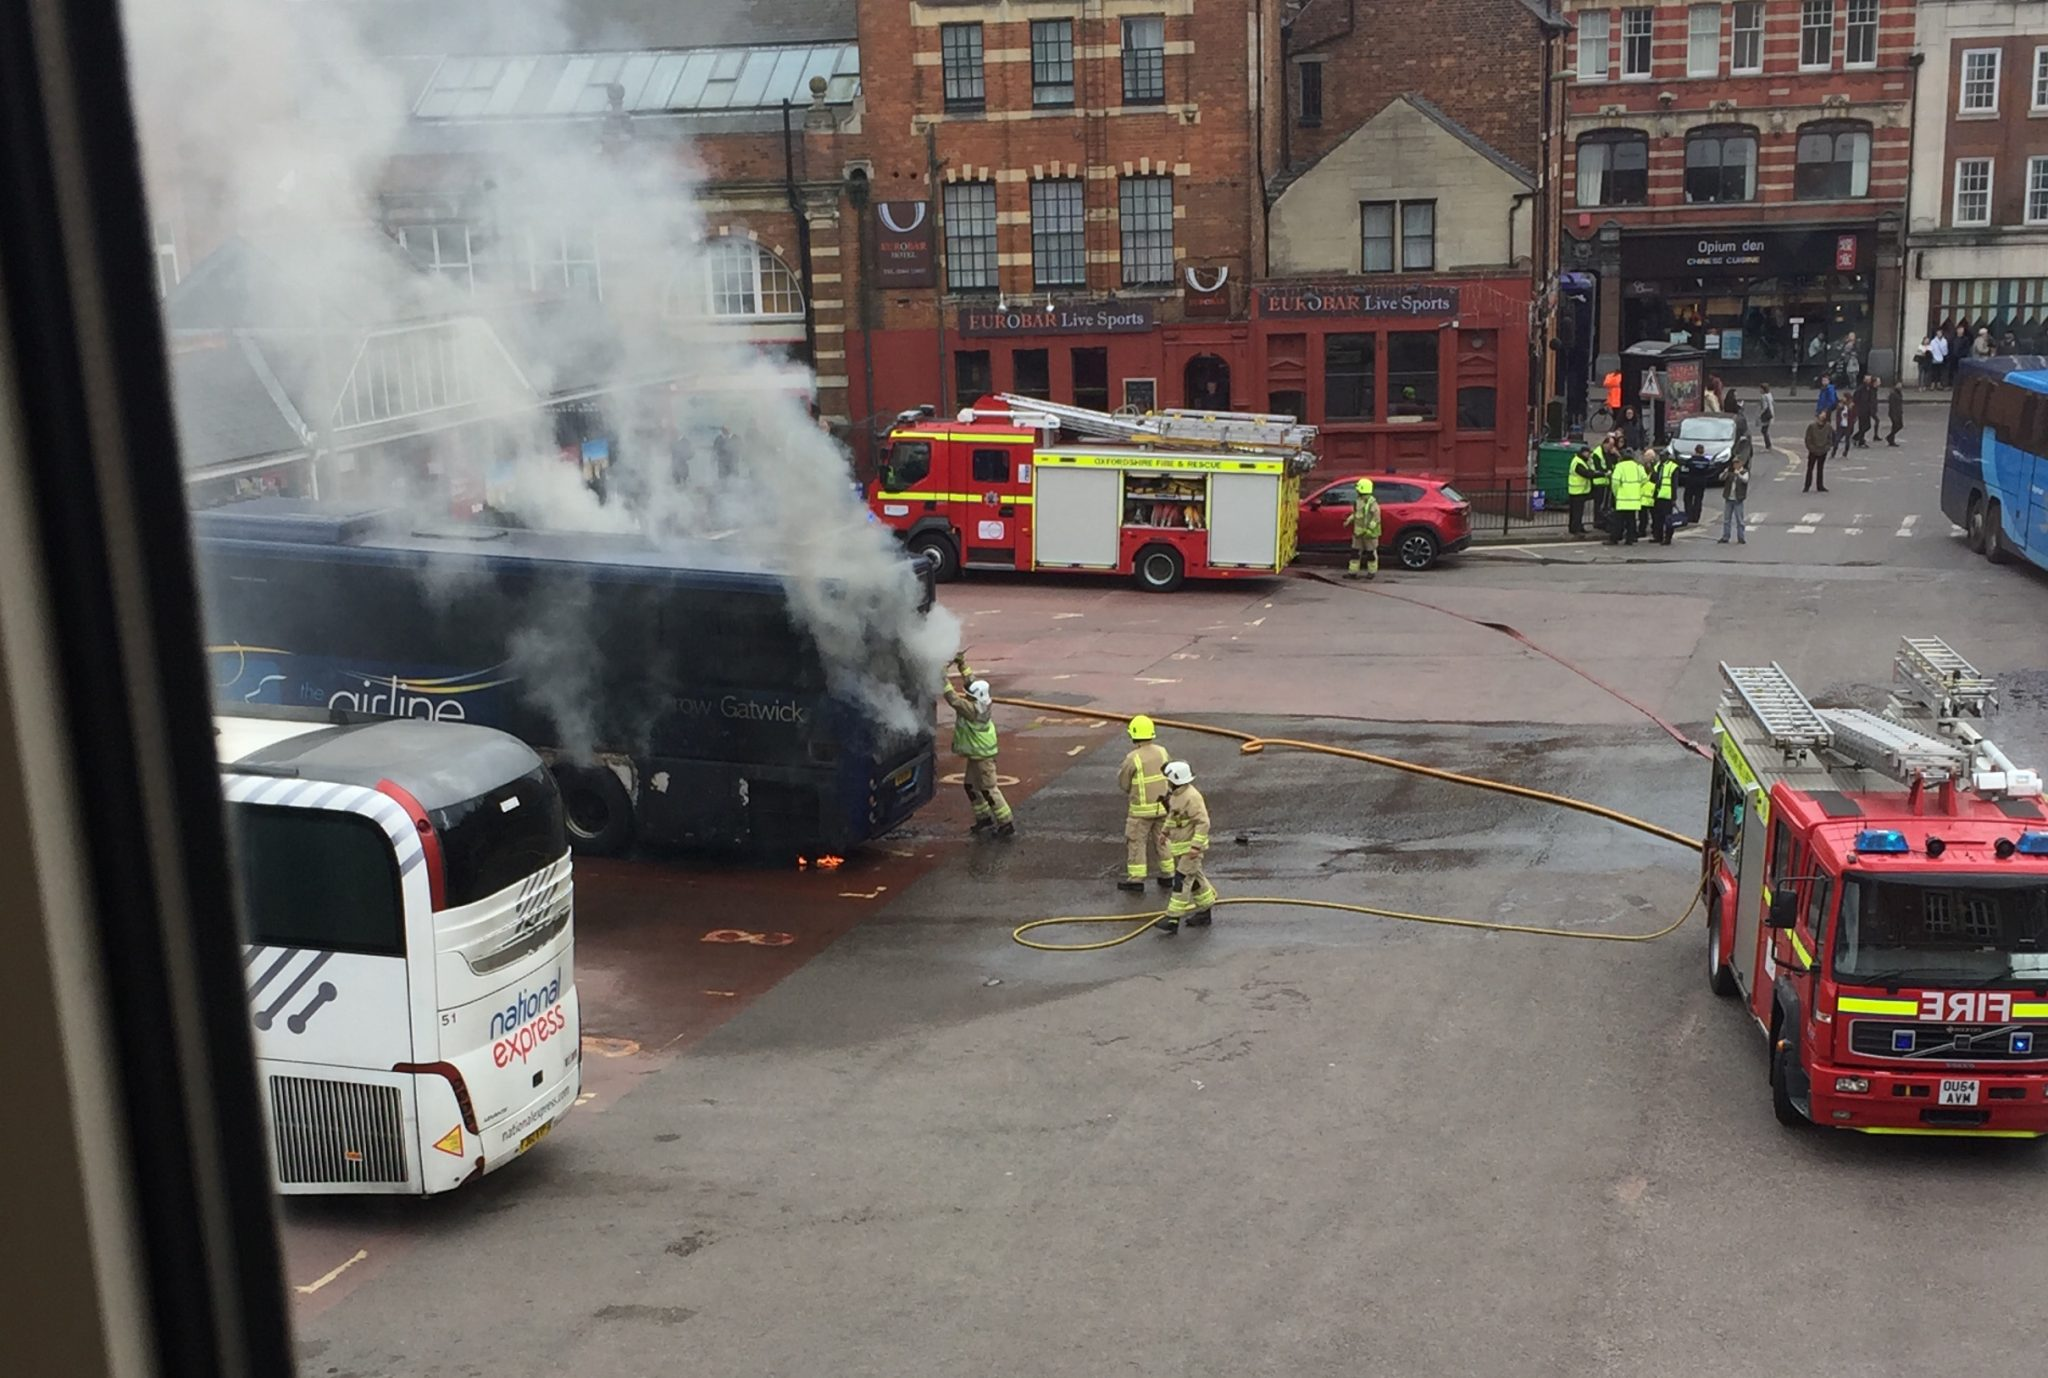 Gloucester Green Bus station shut down after coach catches fire